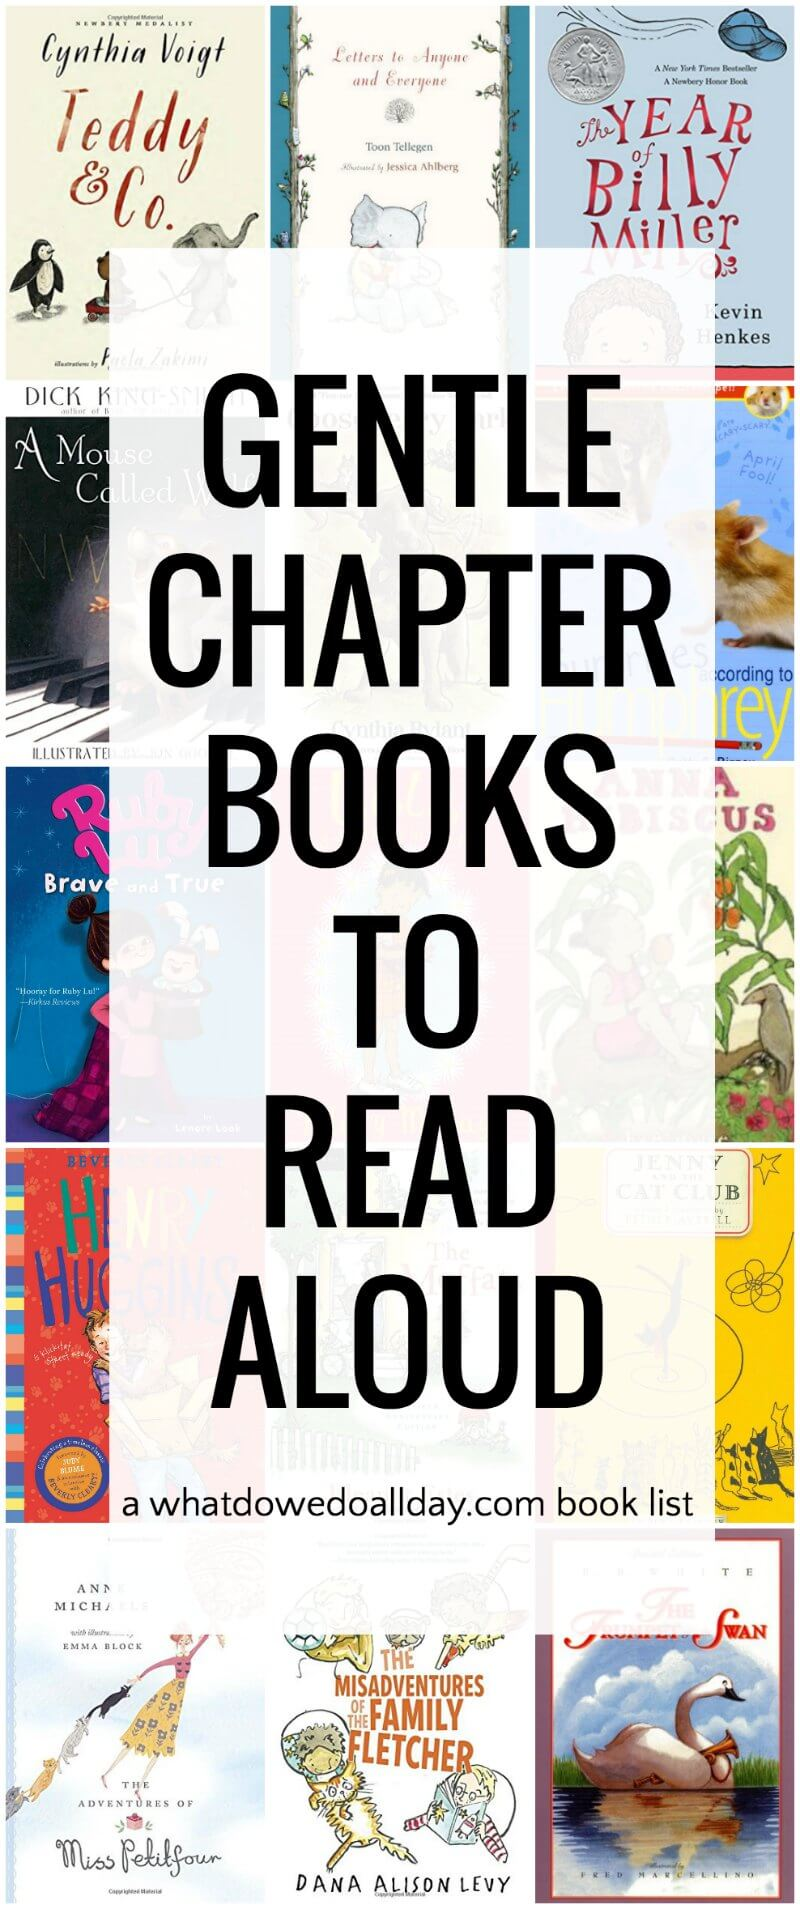 List of non-scary, gentle chapter books suited to reading aloud to kids of all ages.